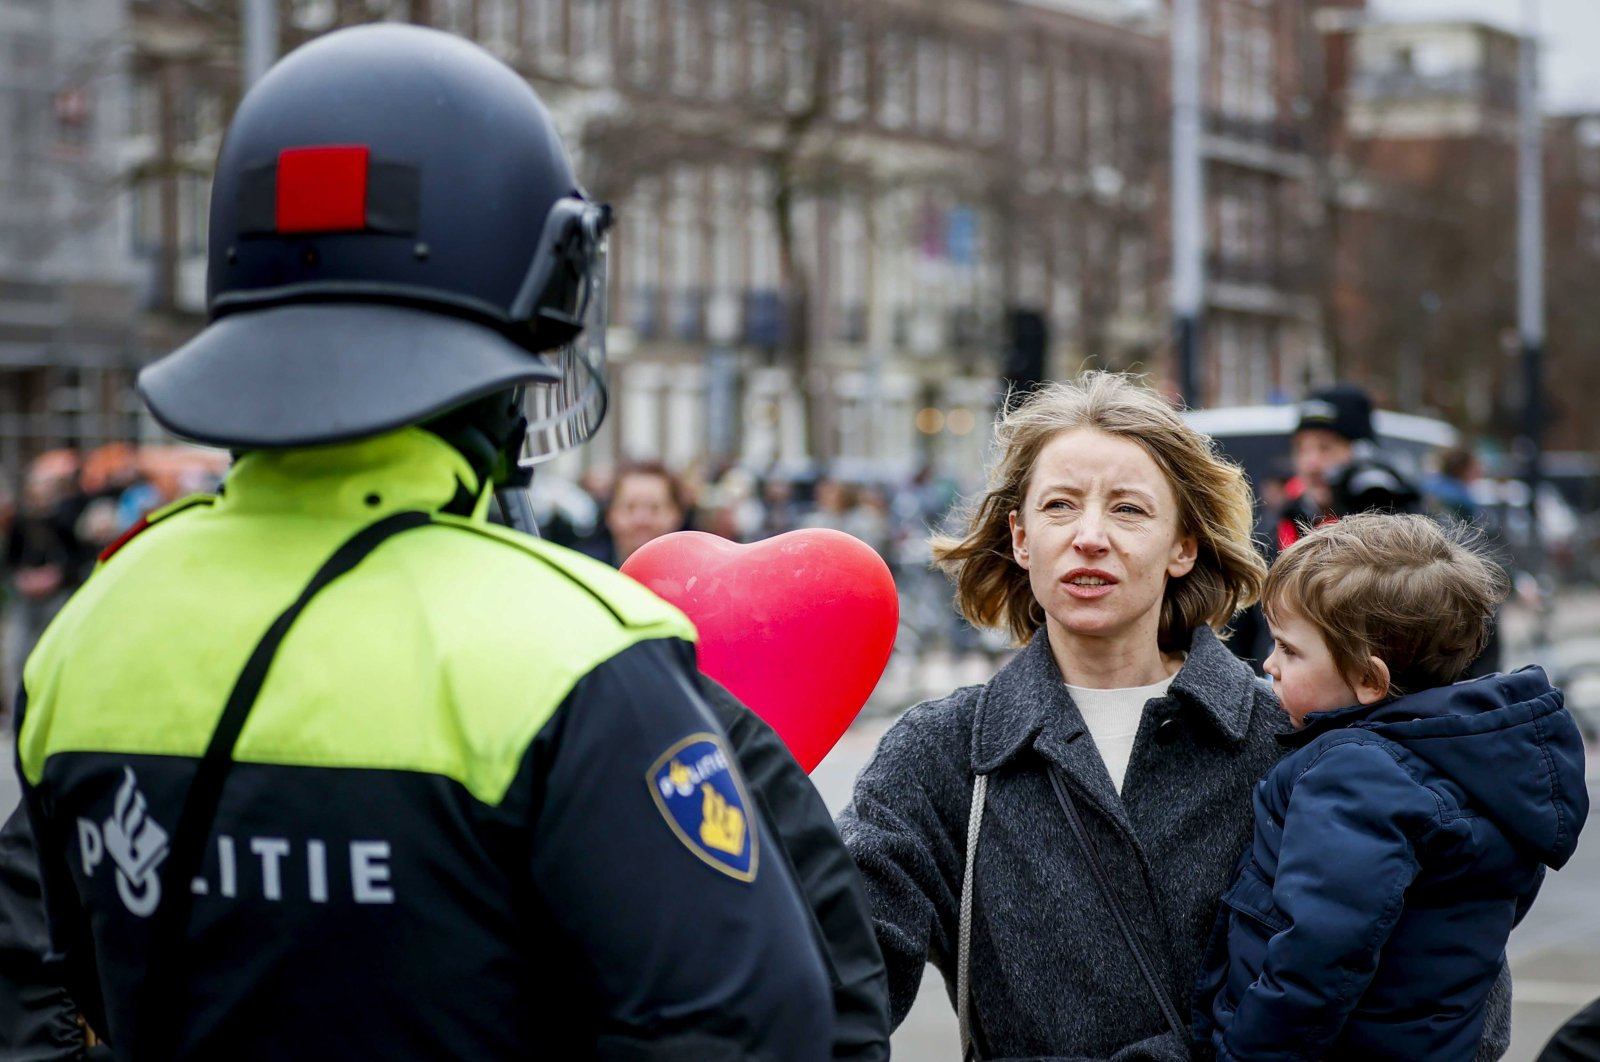 Police start clearing the area from protesters on the Museumplein during a demonstration against mayor Halsema, Amsterdam, the Netherlands, March 21, 2021. (EPA Photo)